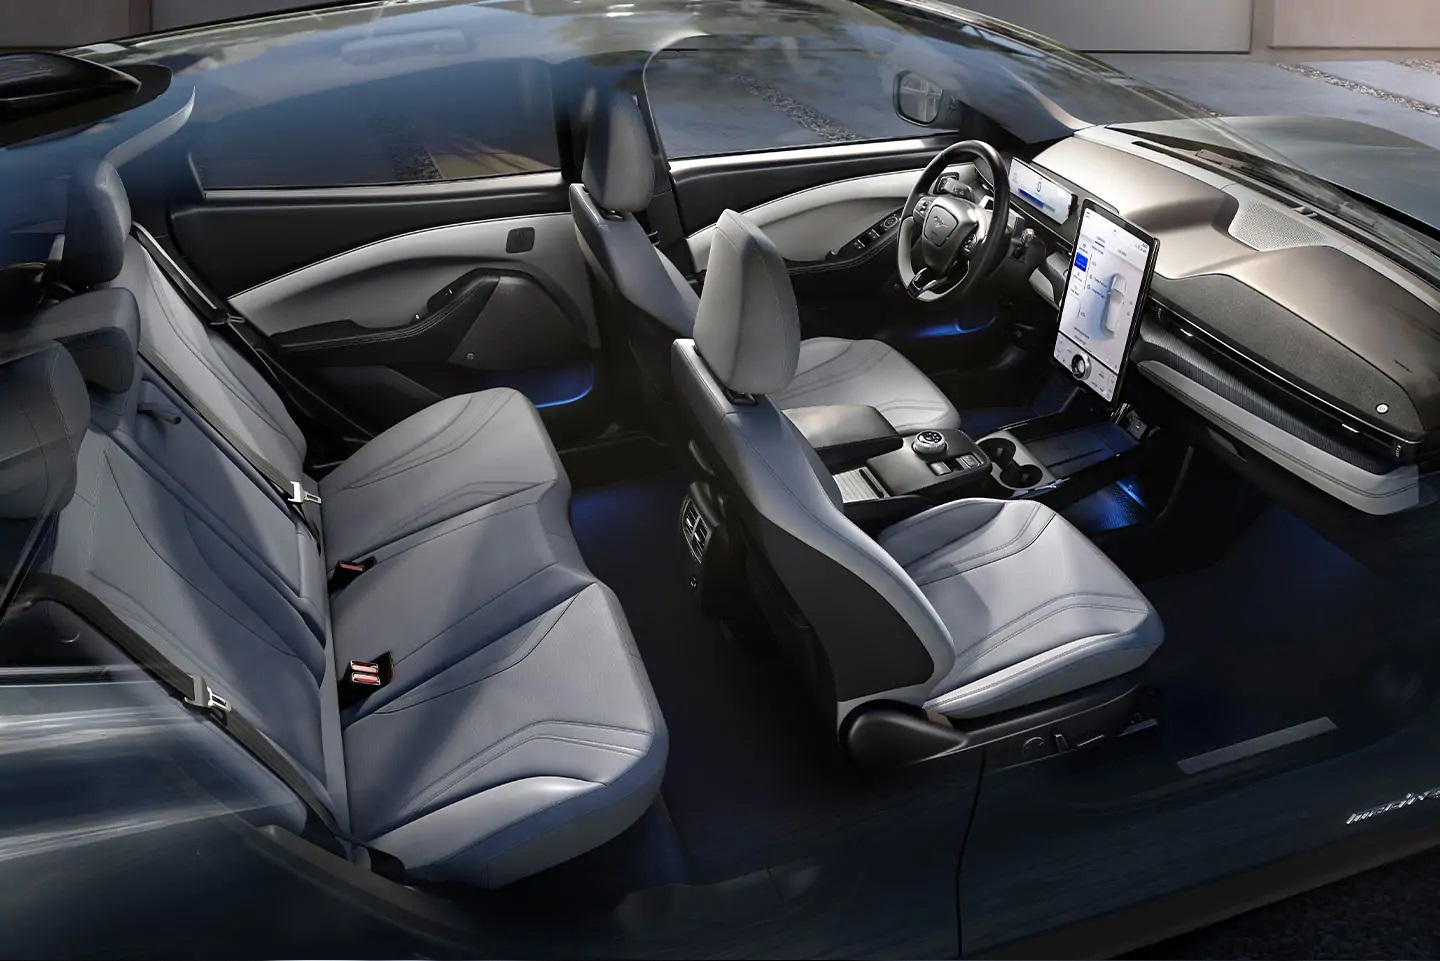 2021 Ford Mustang Mach-E Cabin